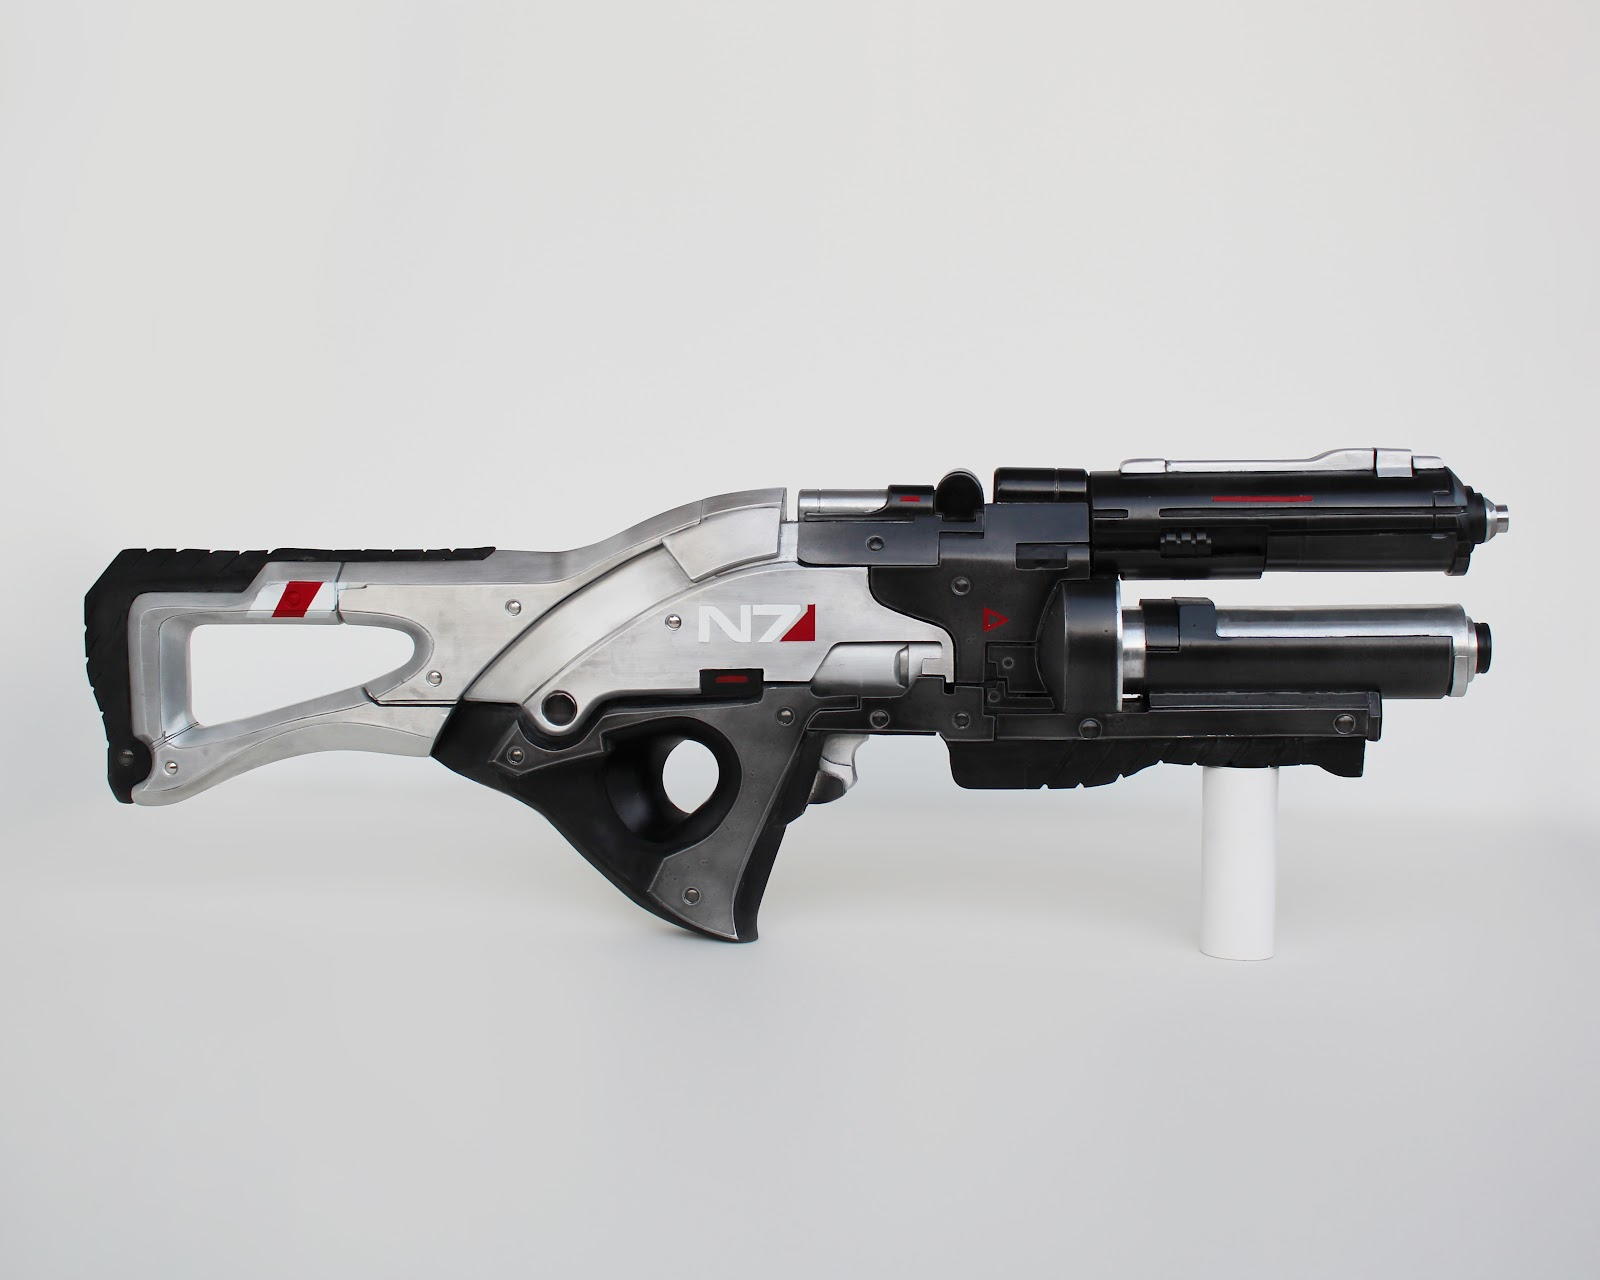 Halo 4 Light Rifle Build: For Sale/Commissions